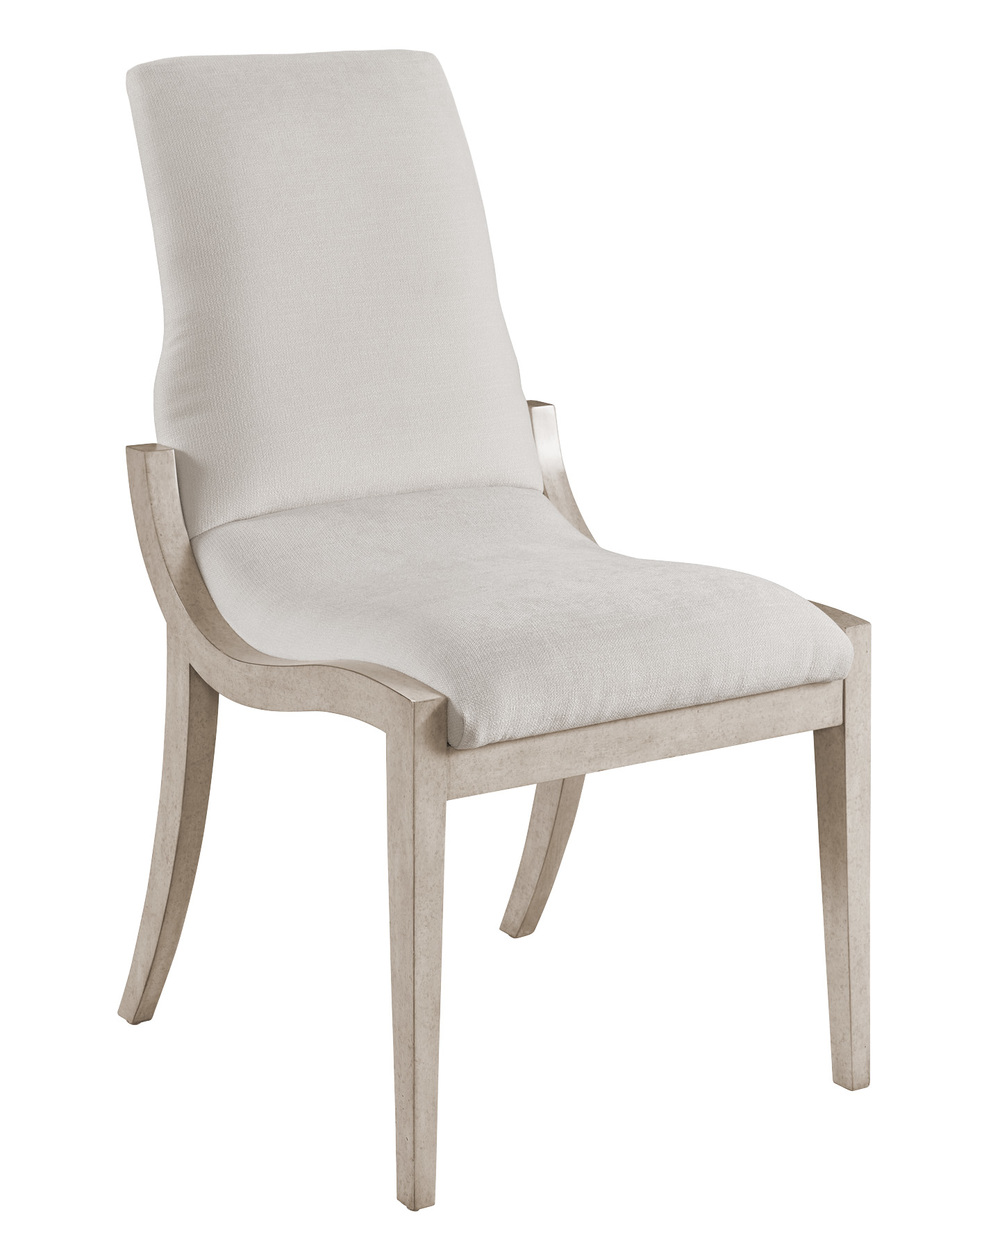 MARGE CARSON, INC. - Eclipse Side Chair